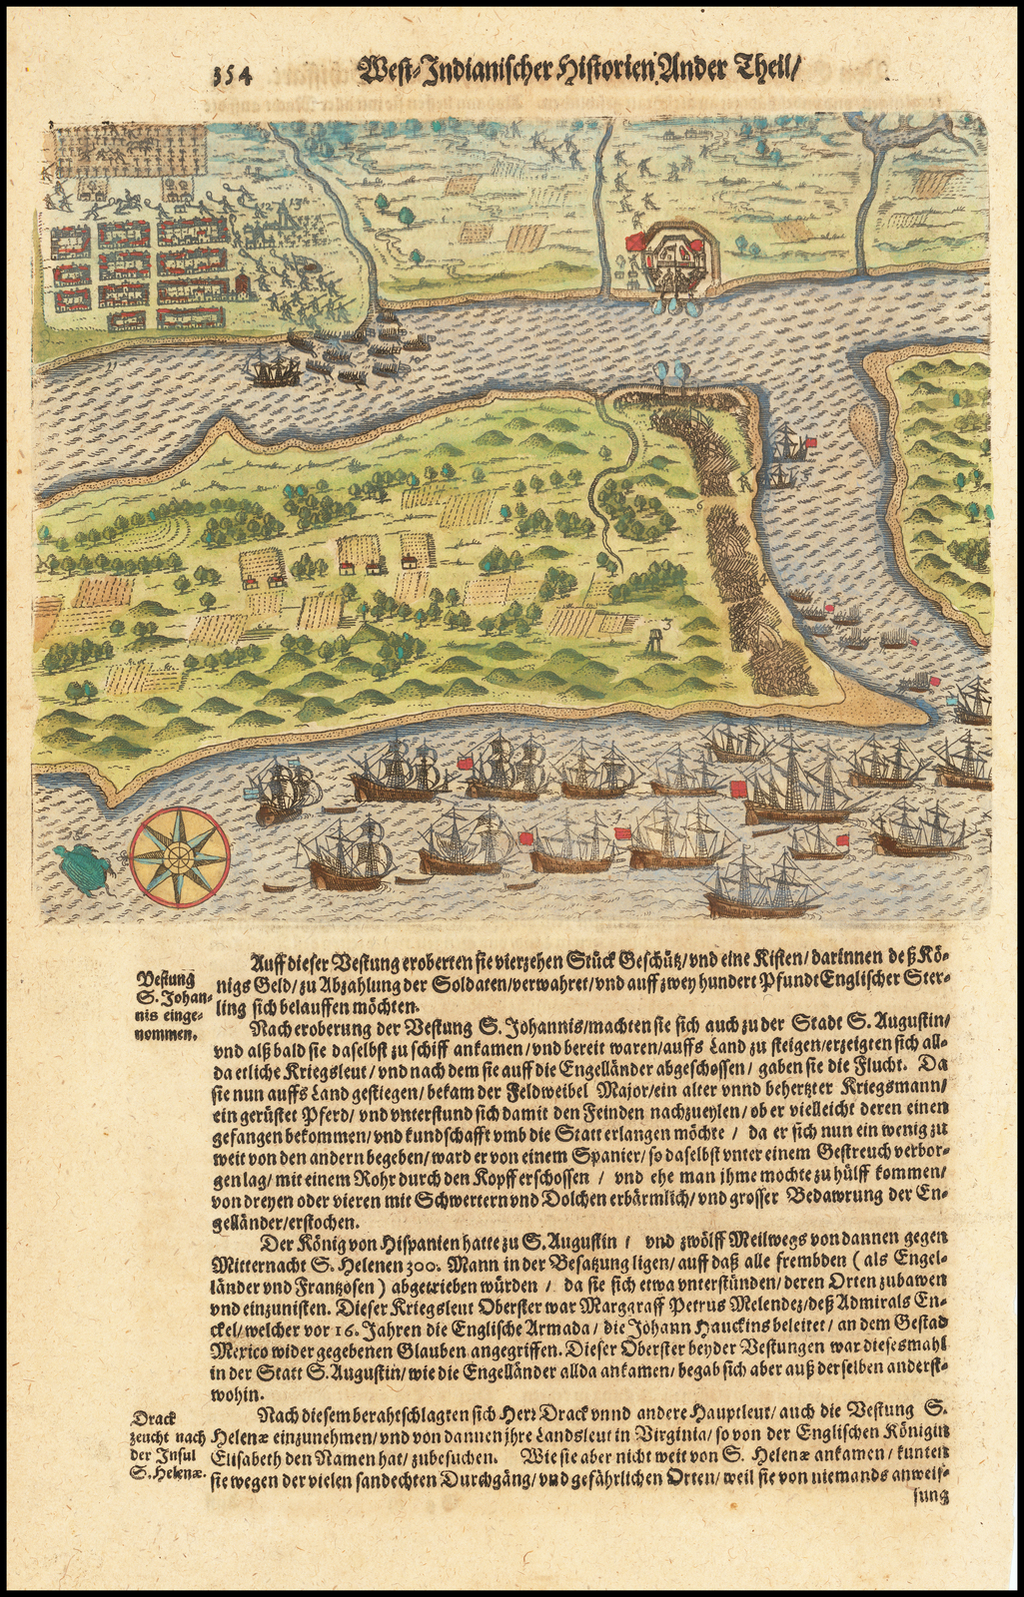 [Drake's Attack on St. Augustine, Florida.] By Theodor De Bry